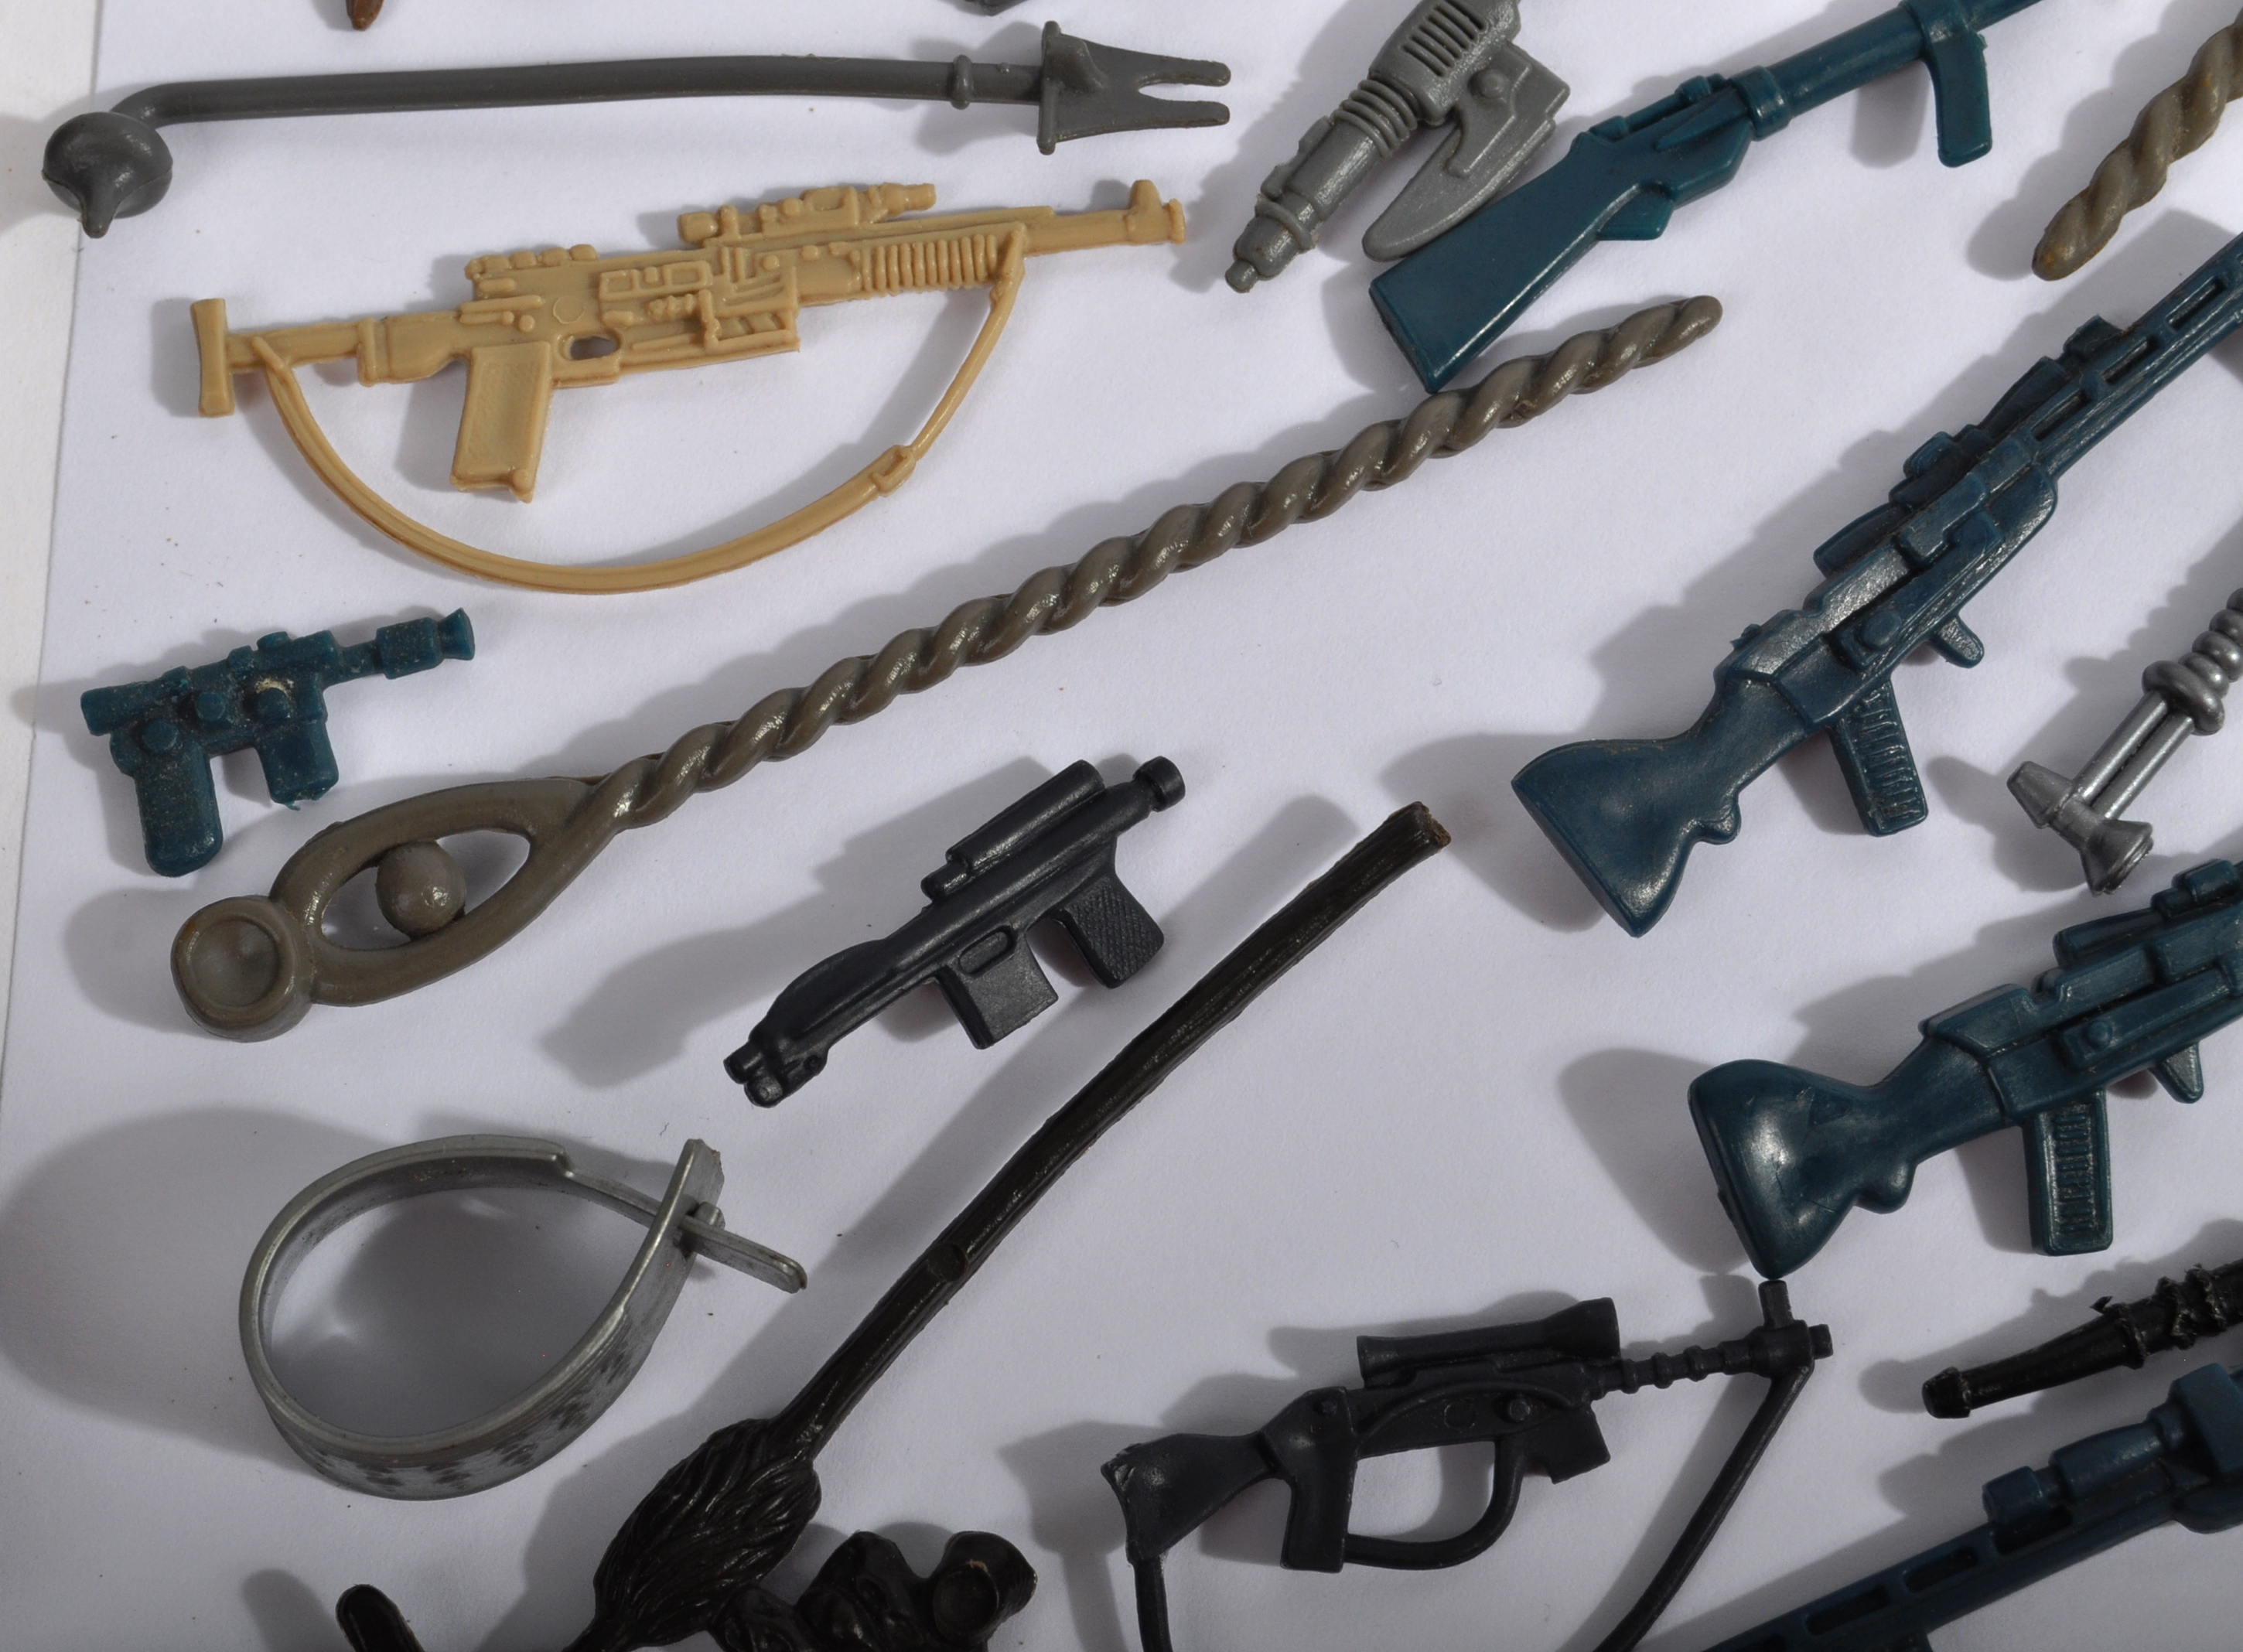 STAR WARS - LARGE COLLECTION OF ORIGINAL VINTAGE WEAPONS & ACCESSORIES. - Image 8 of 11